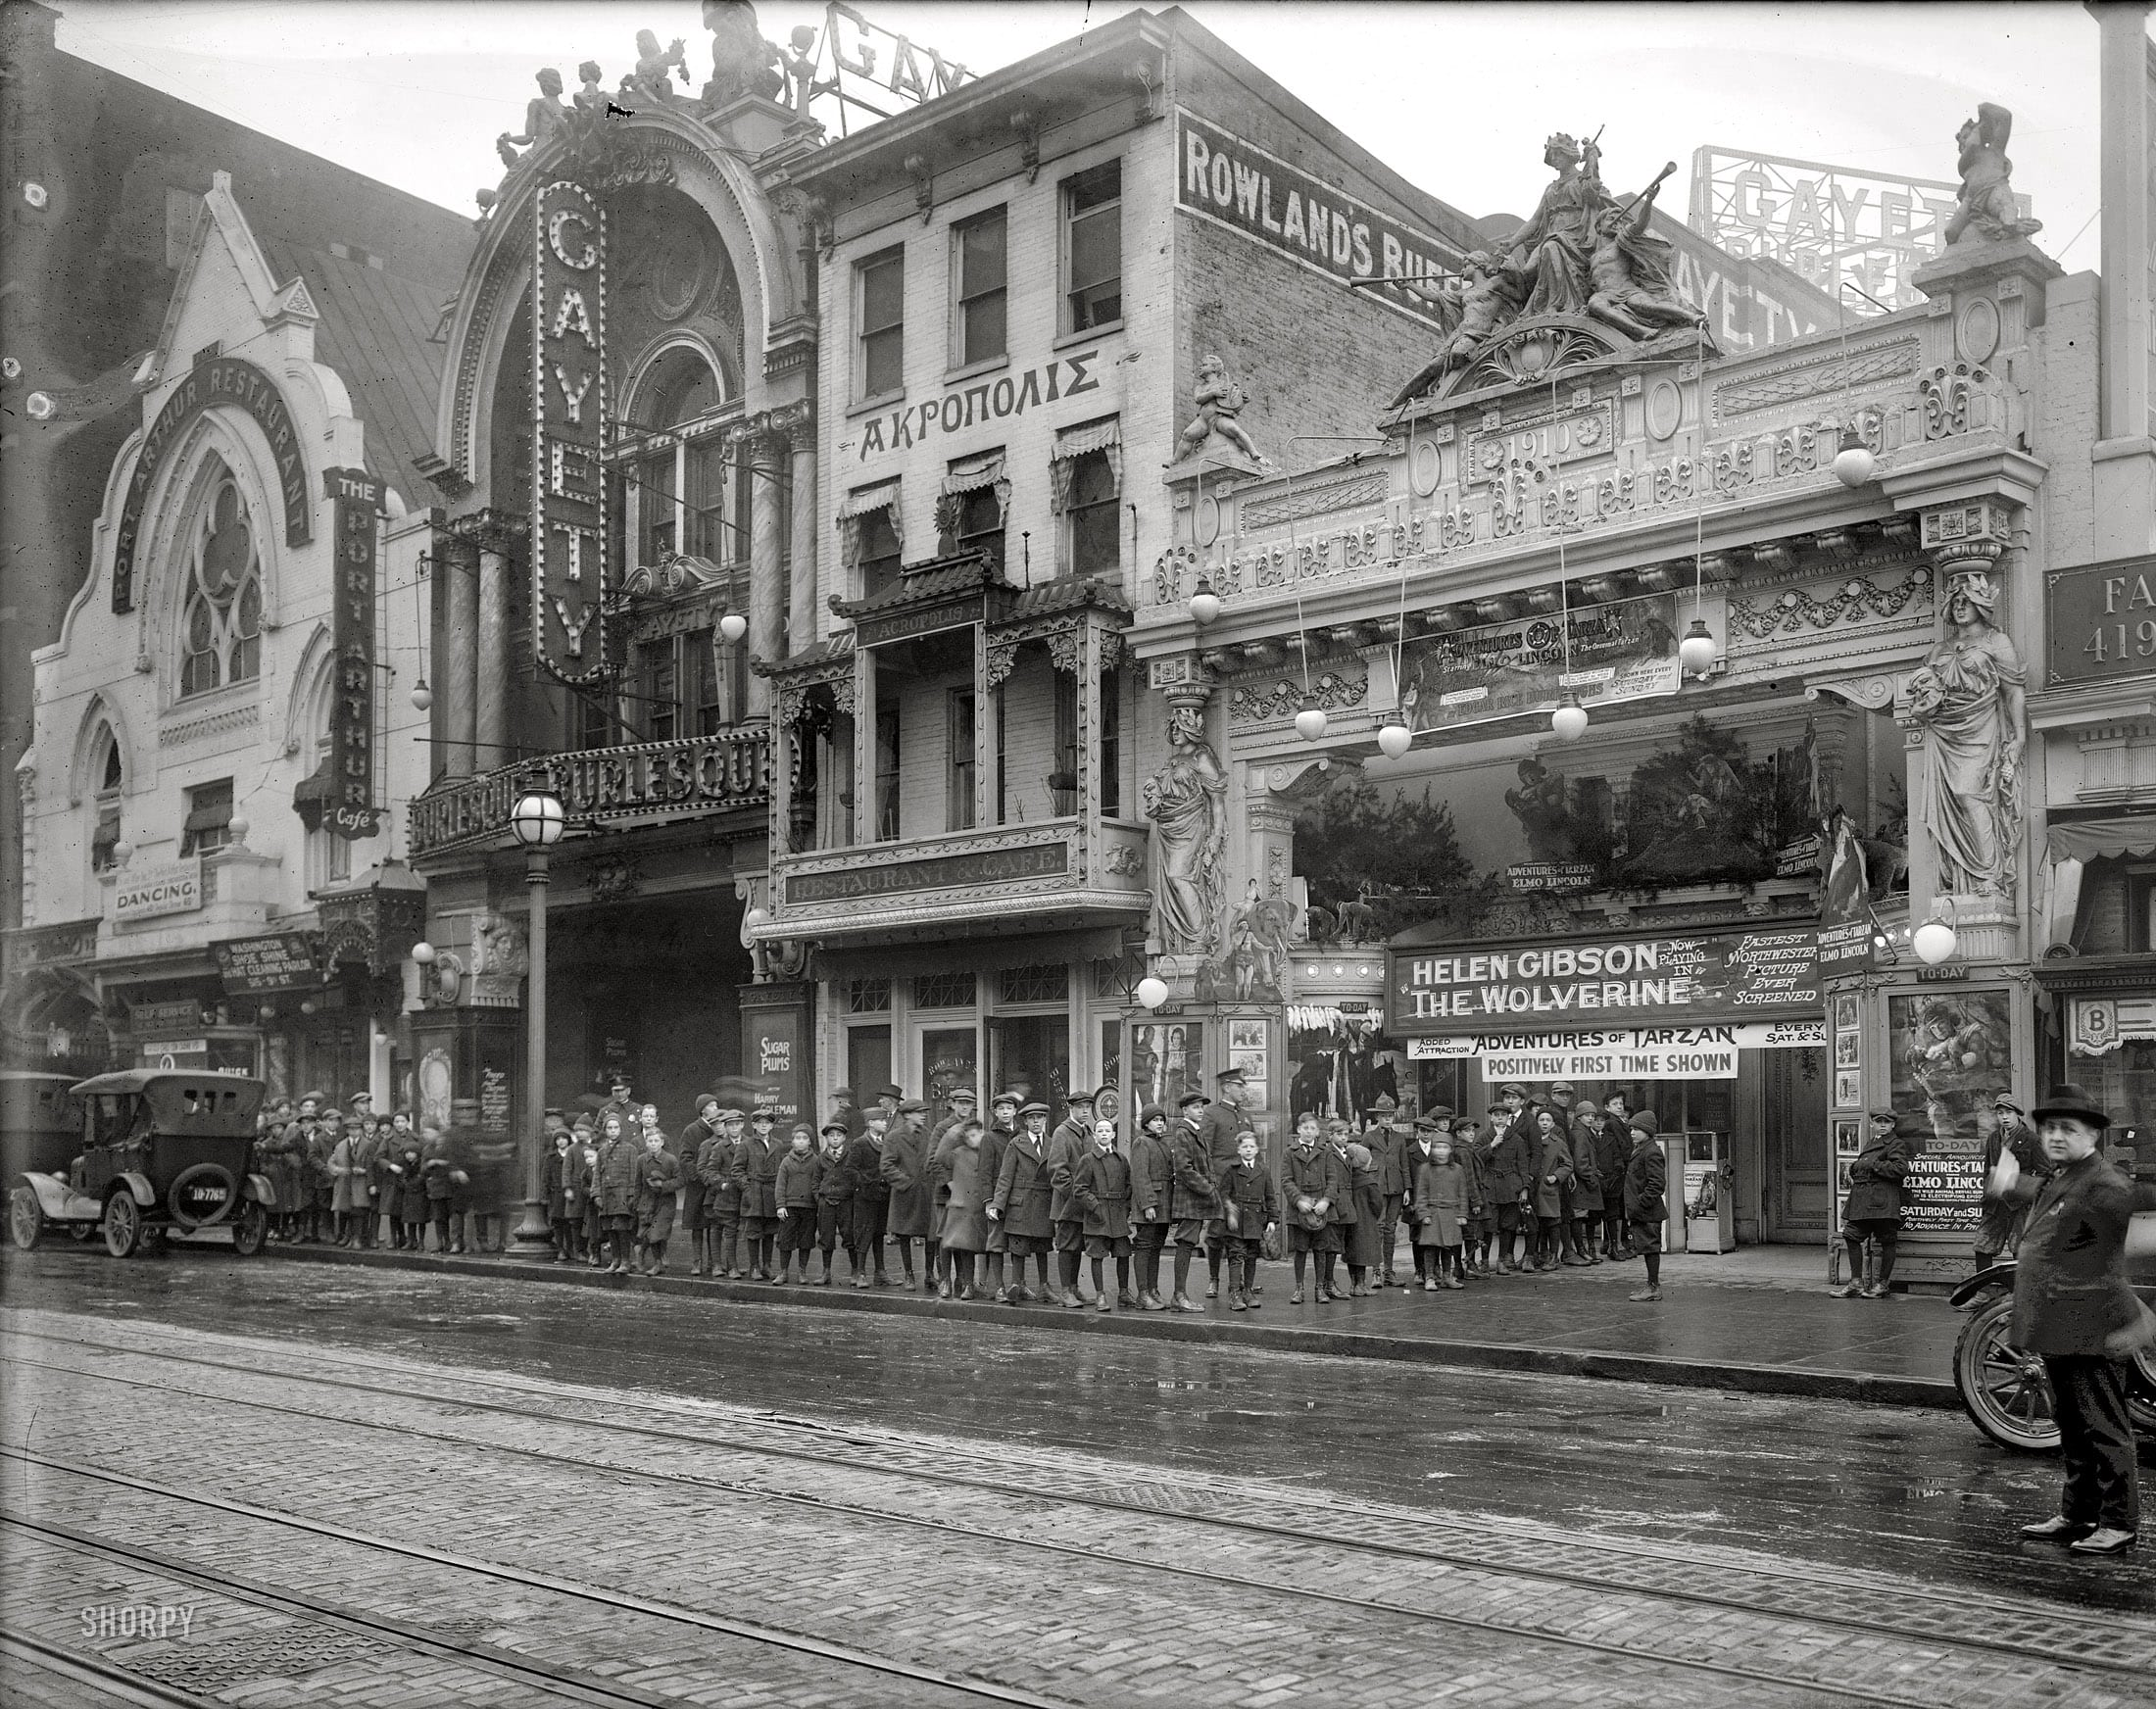 Leader Theater and Gayity Theater circa 1922